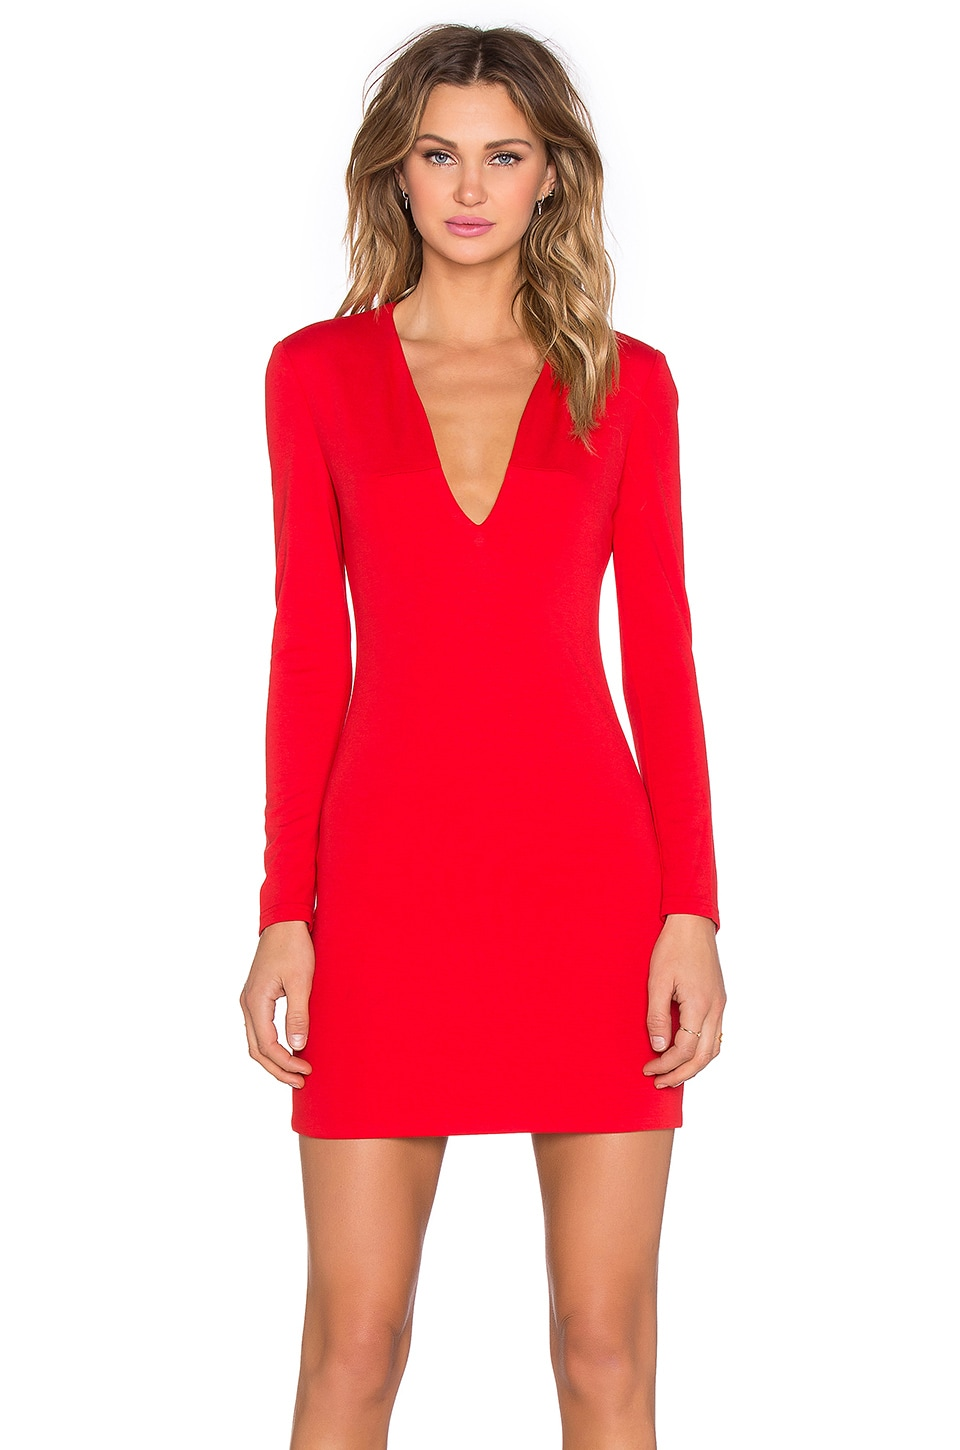 BLAQUE LABEL x REVOLVE Long Sleeve Mini Dress in Red